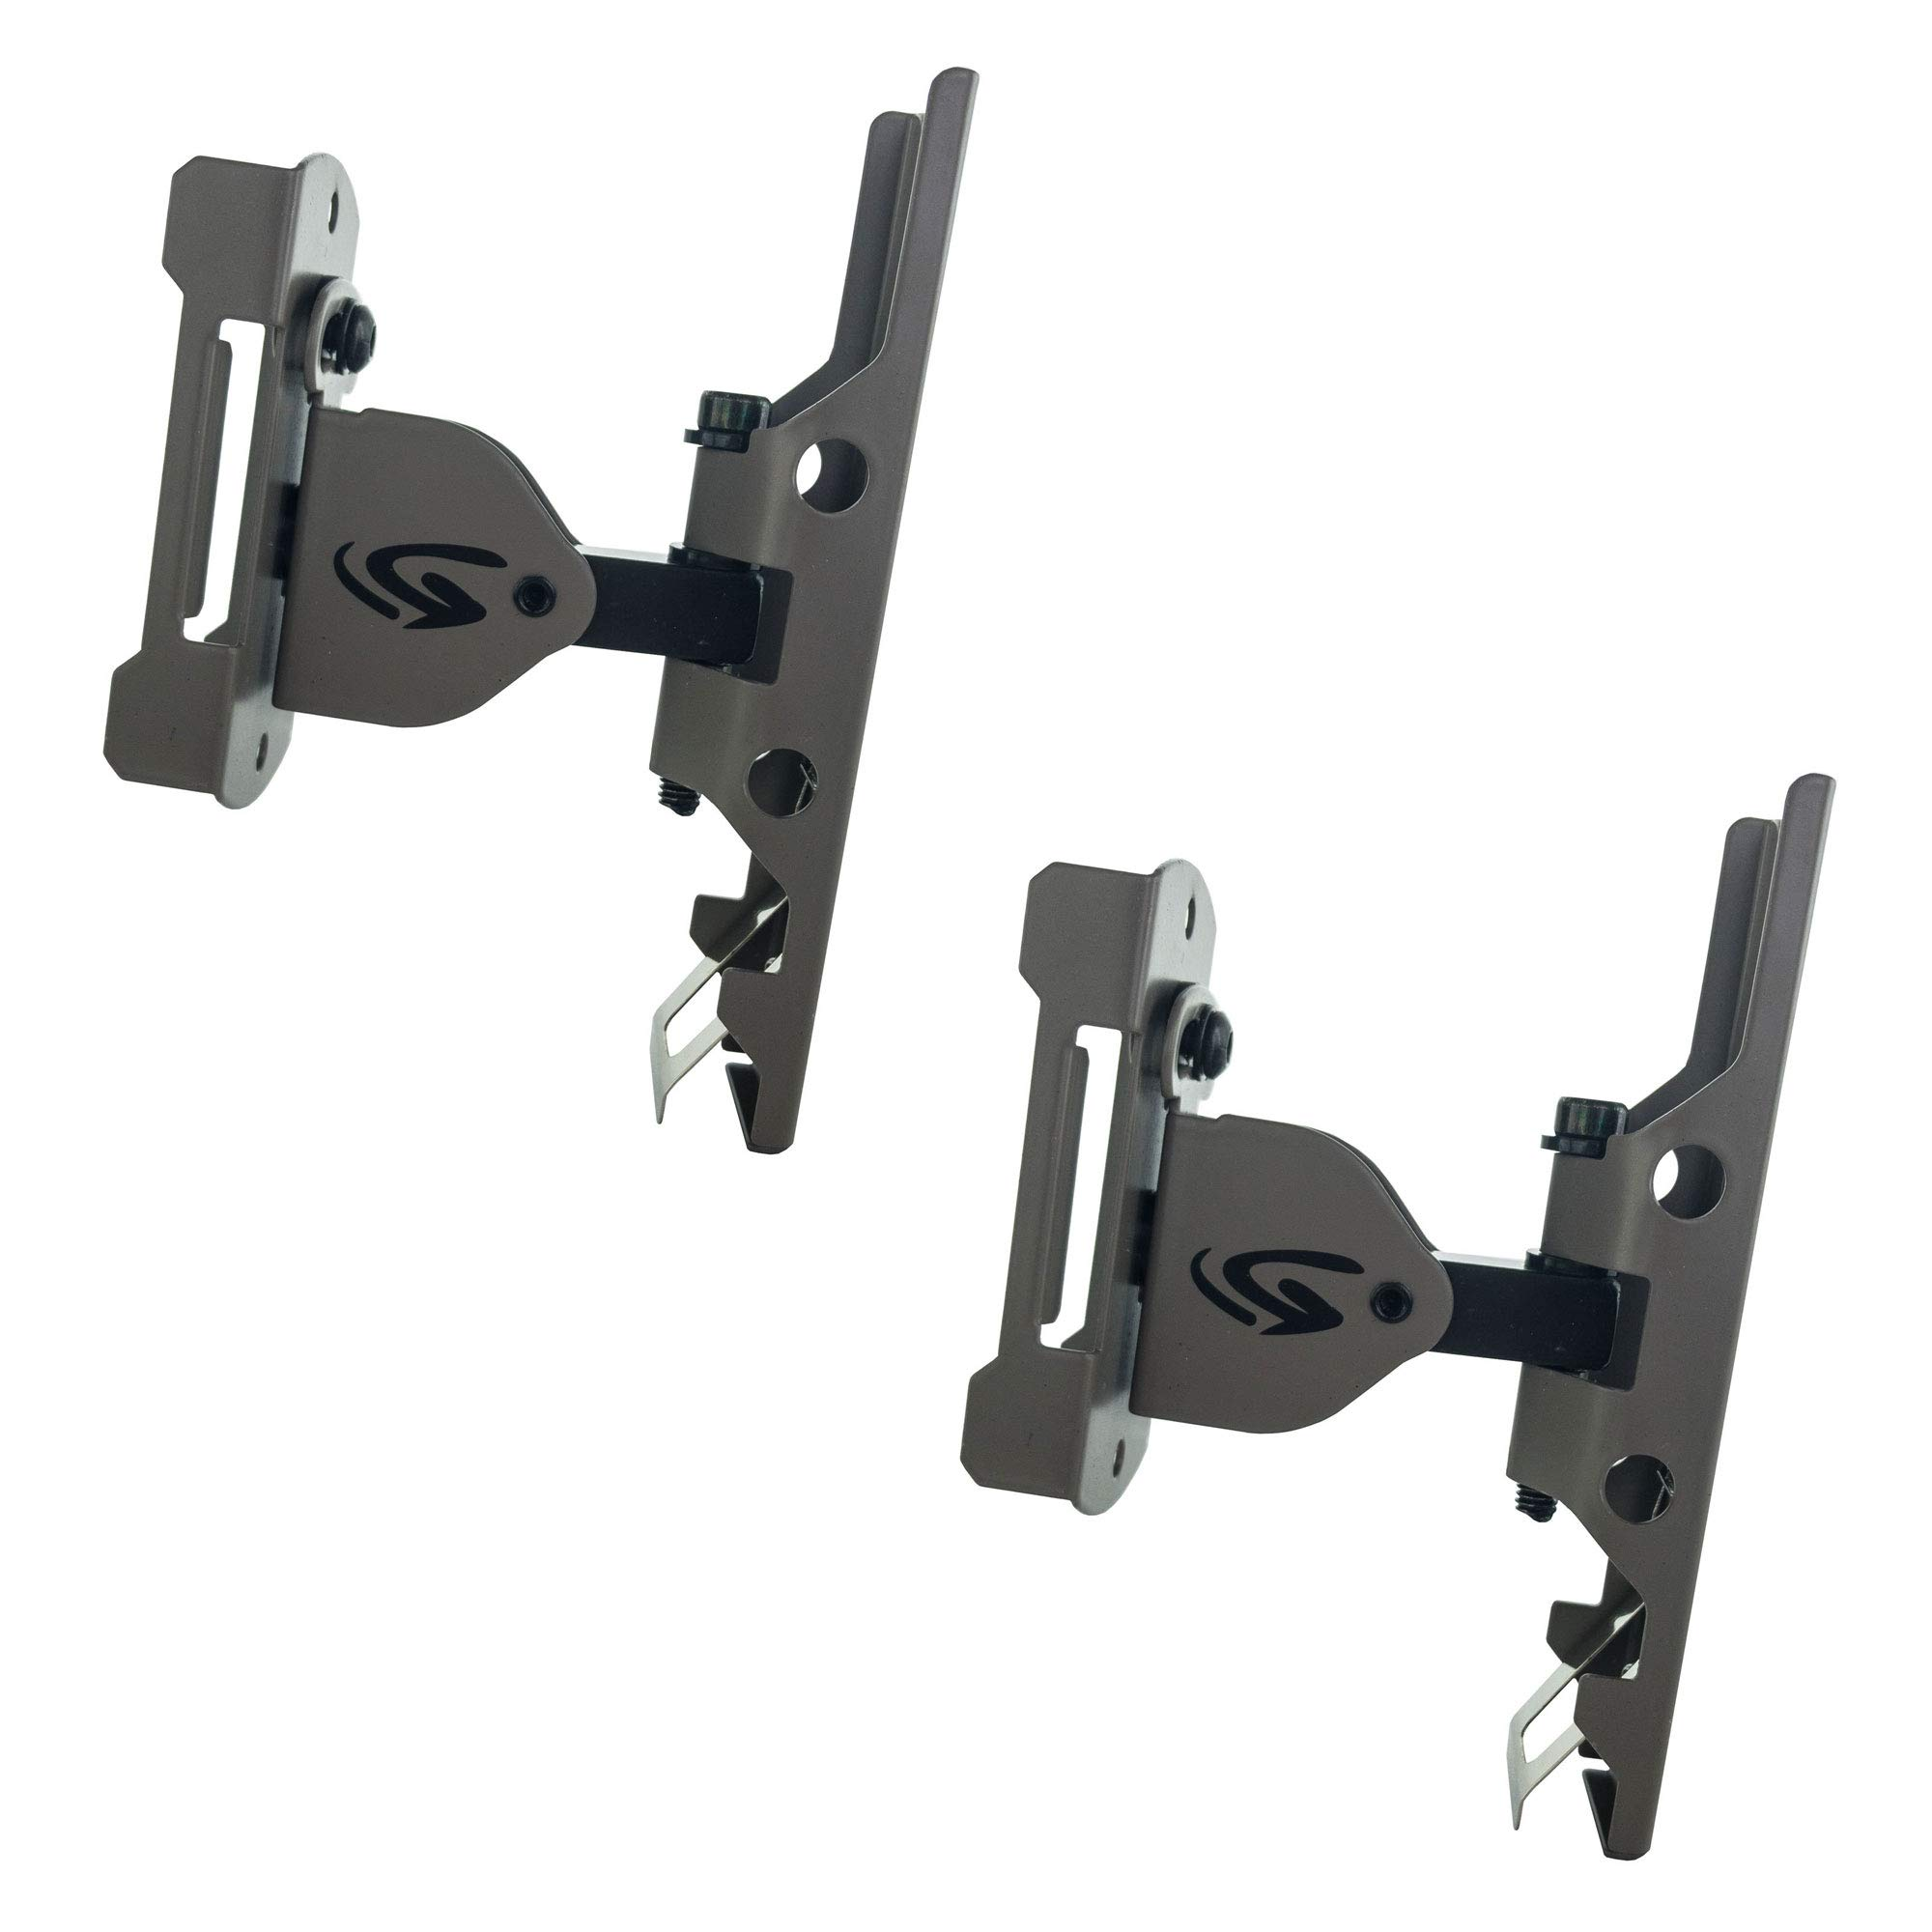 Cuddeback Genius Game Trail Hunting Camera Metal Universal Genius Pan-Tilt Mount (2 Pack)